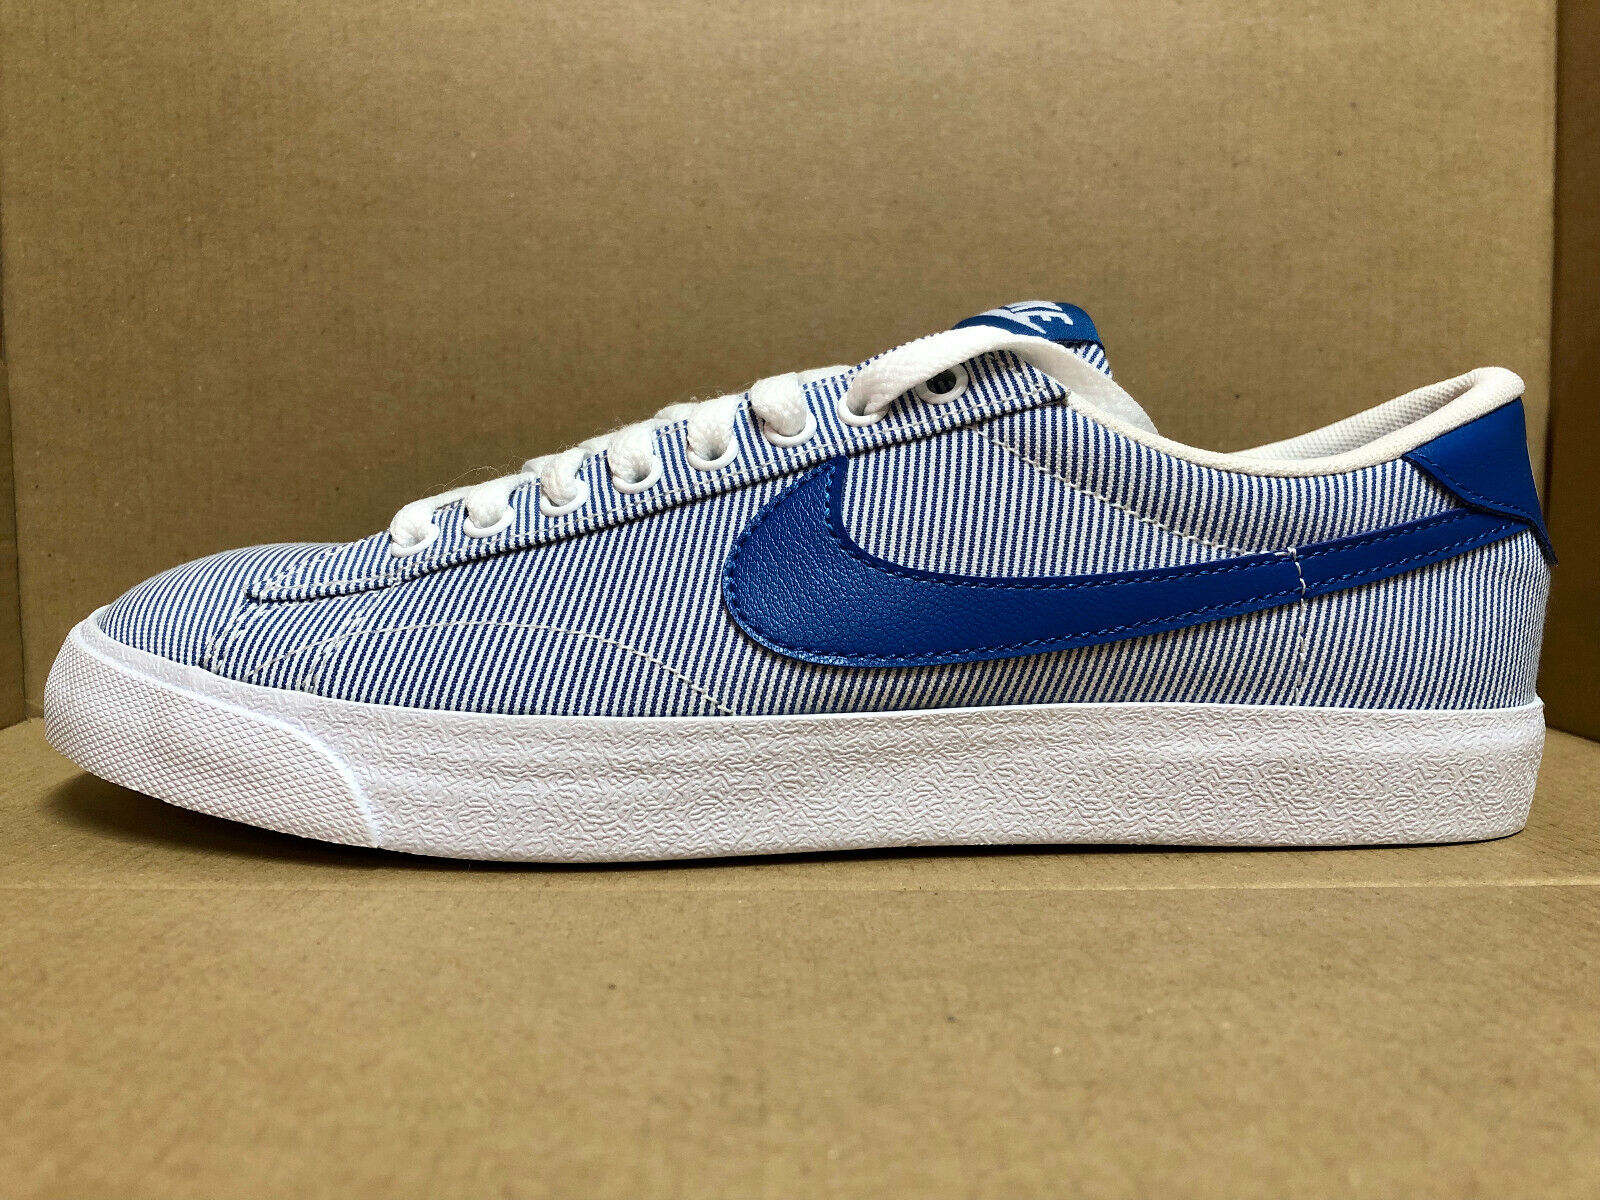 NIKE MEN'S TENNIS CLASSIC AC SHOES SIZE 7.5 white blue 37781